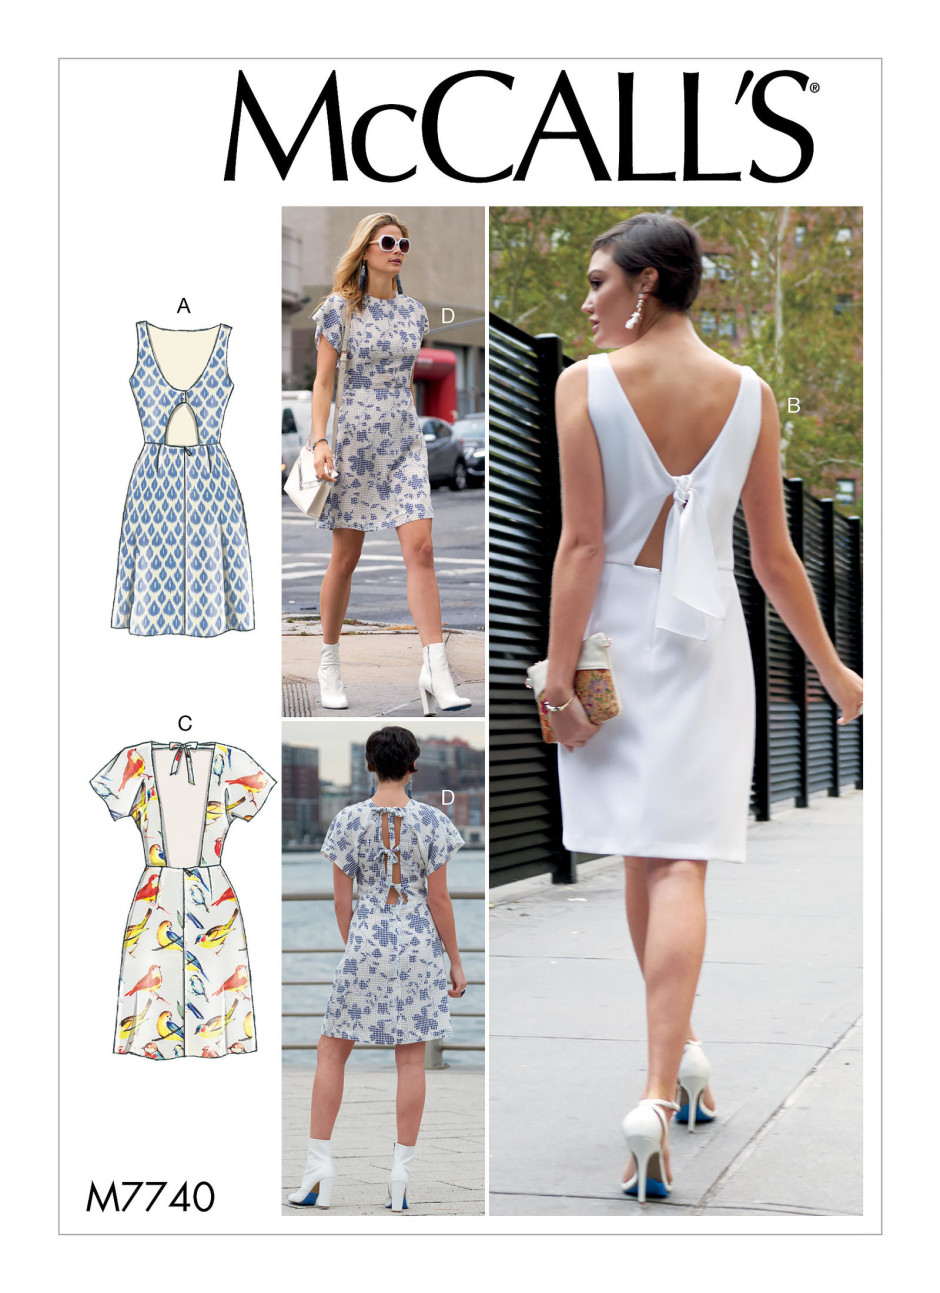 McCalls spring 2018 sewing patterns